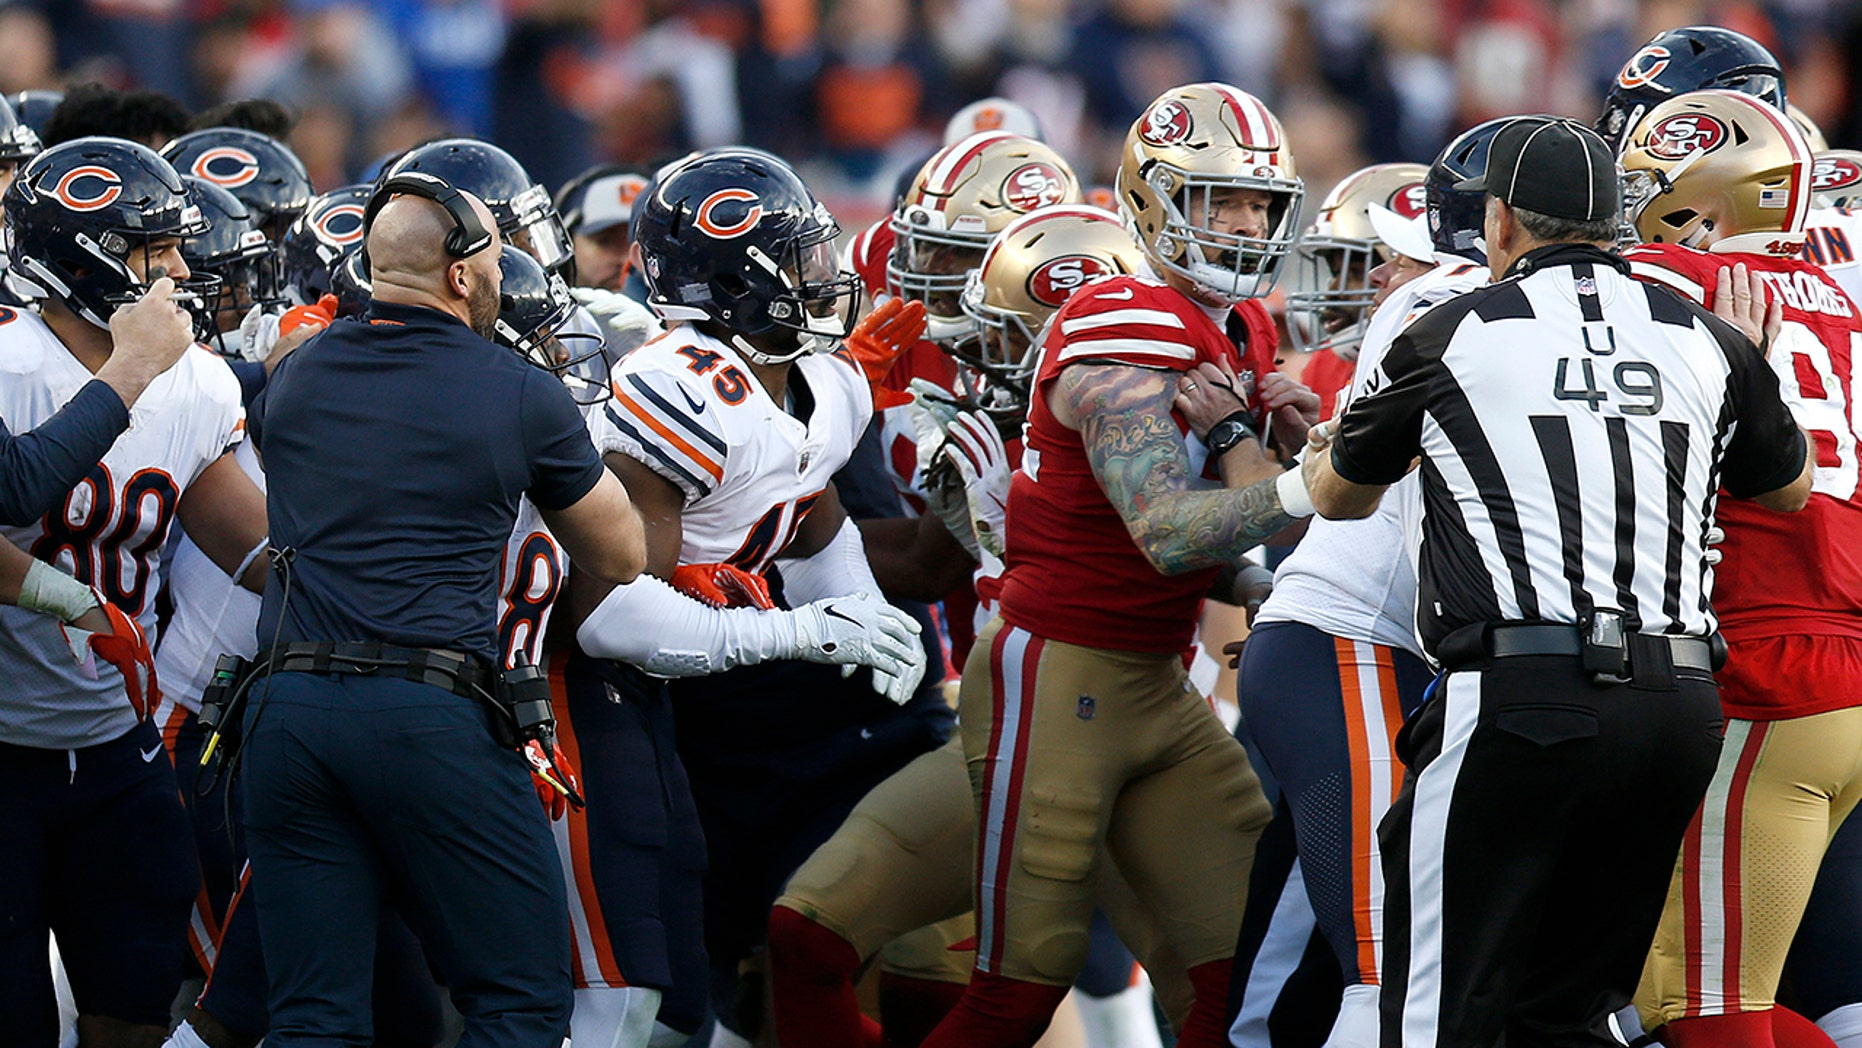 Bears and 49ers Scrap After Late Hit on Trubisky